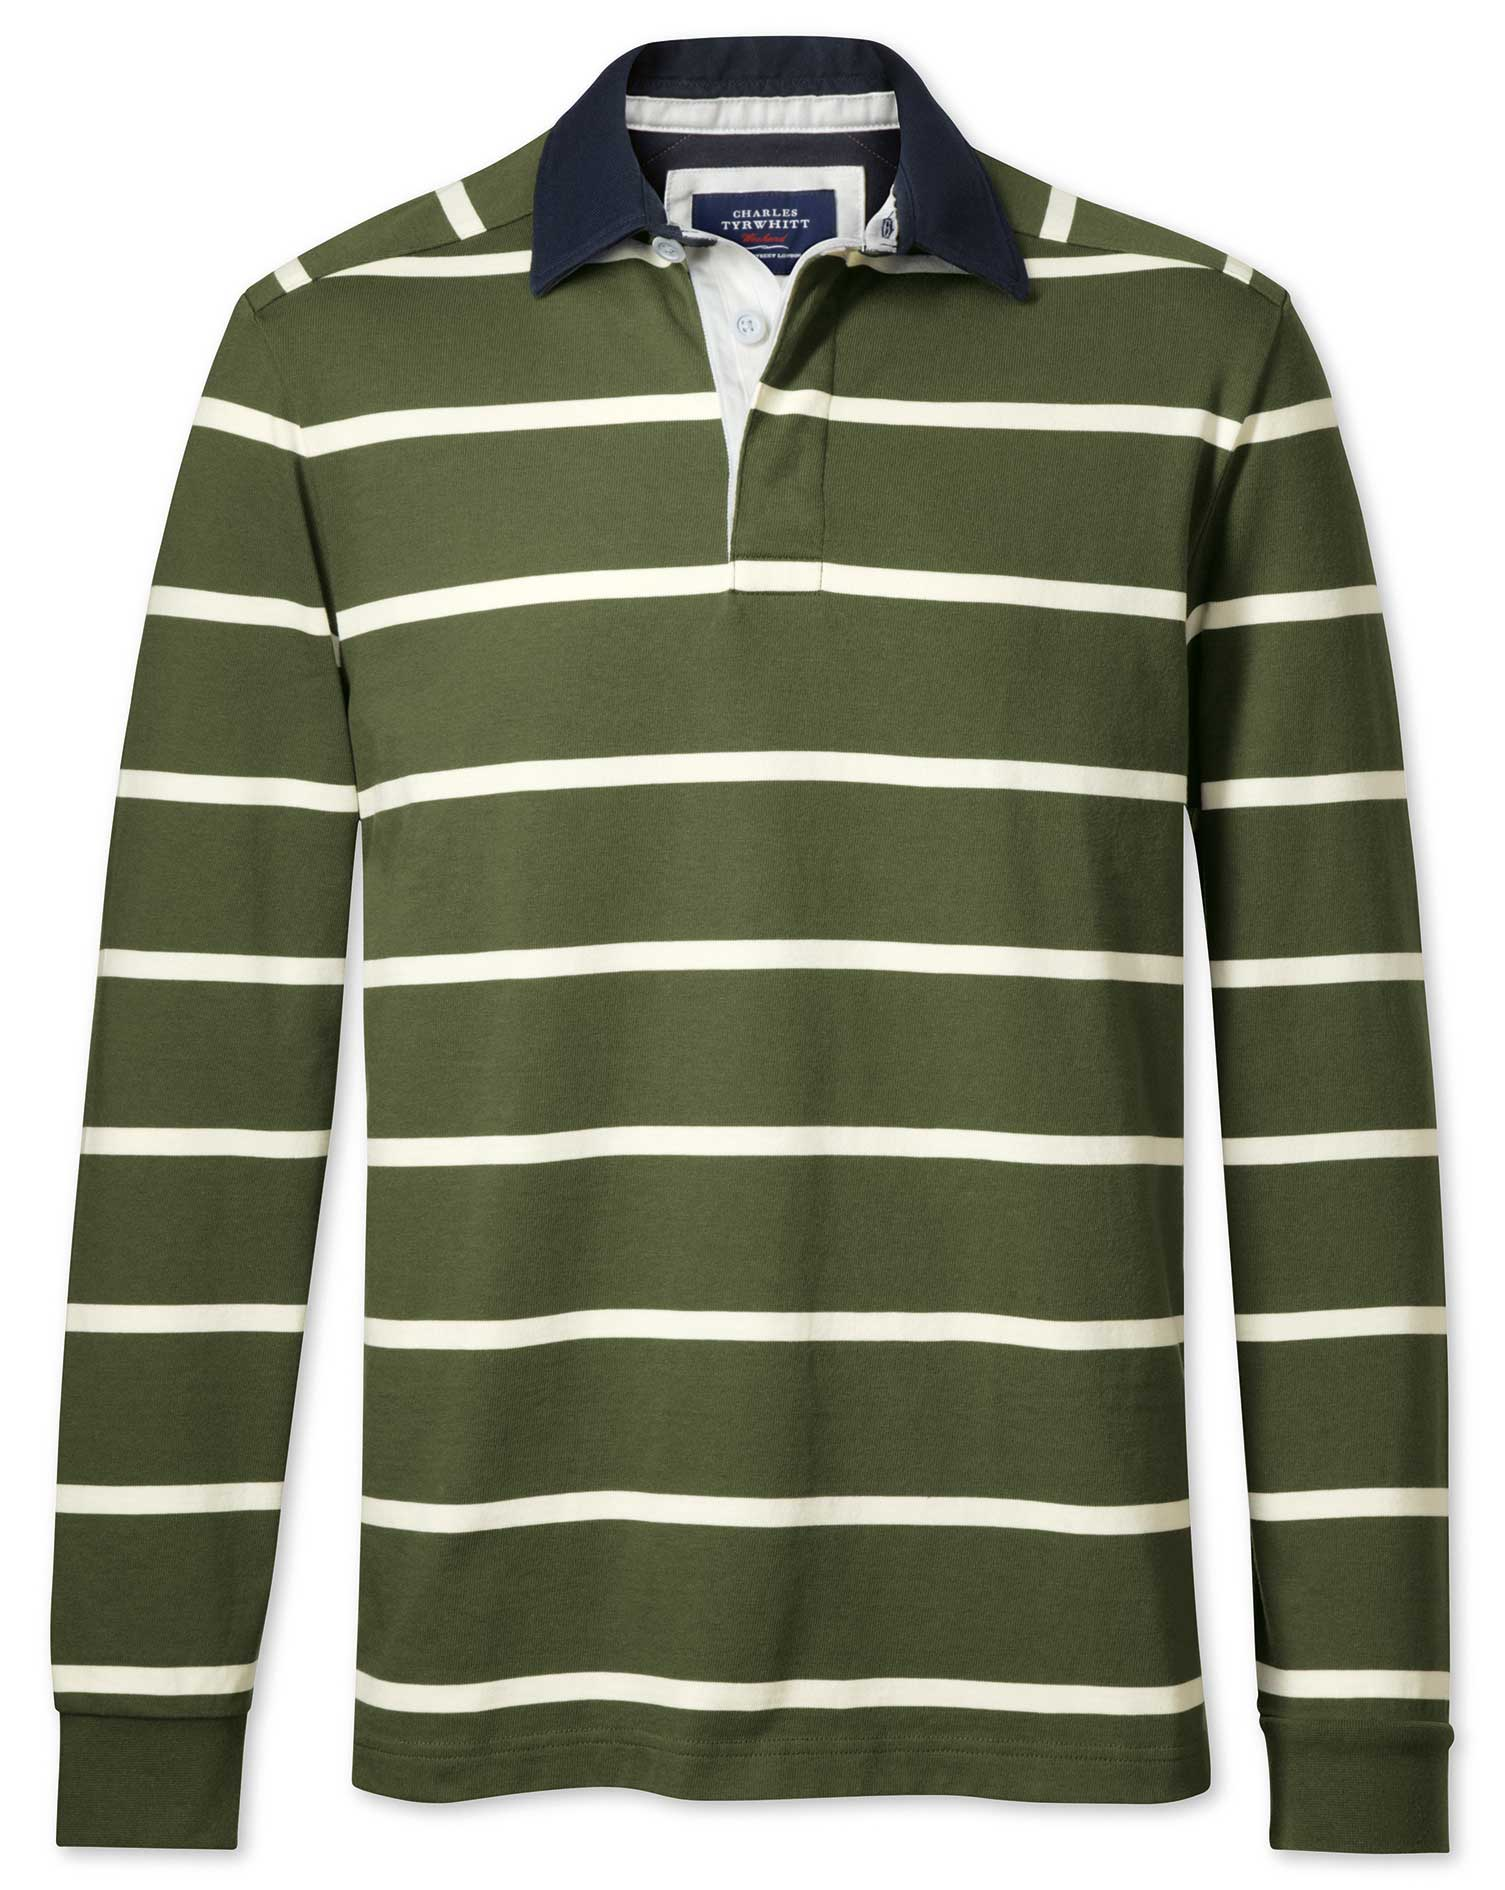 Olive Stripe Rugby Cotton Shirt Size XS by Charles Tyrwhitt